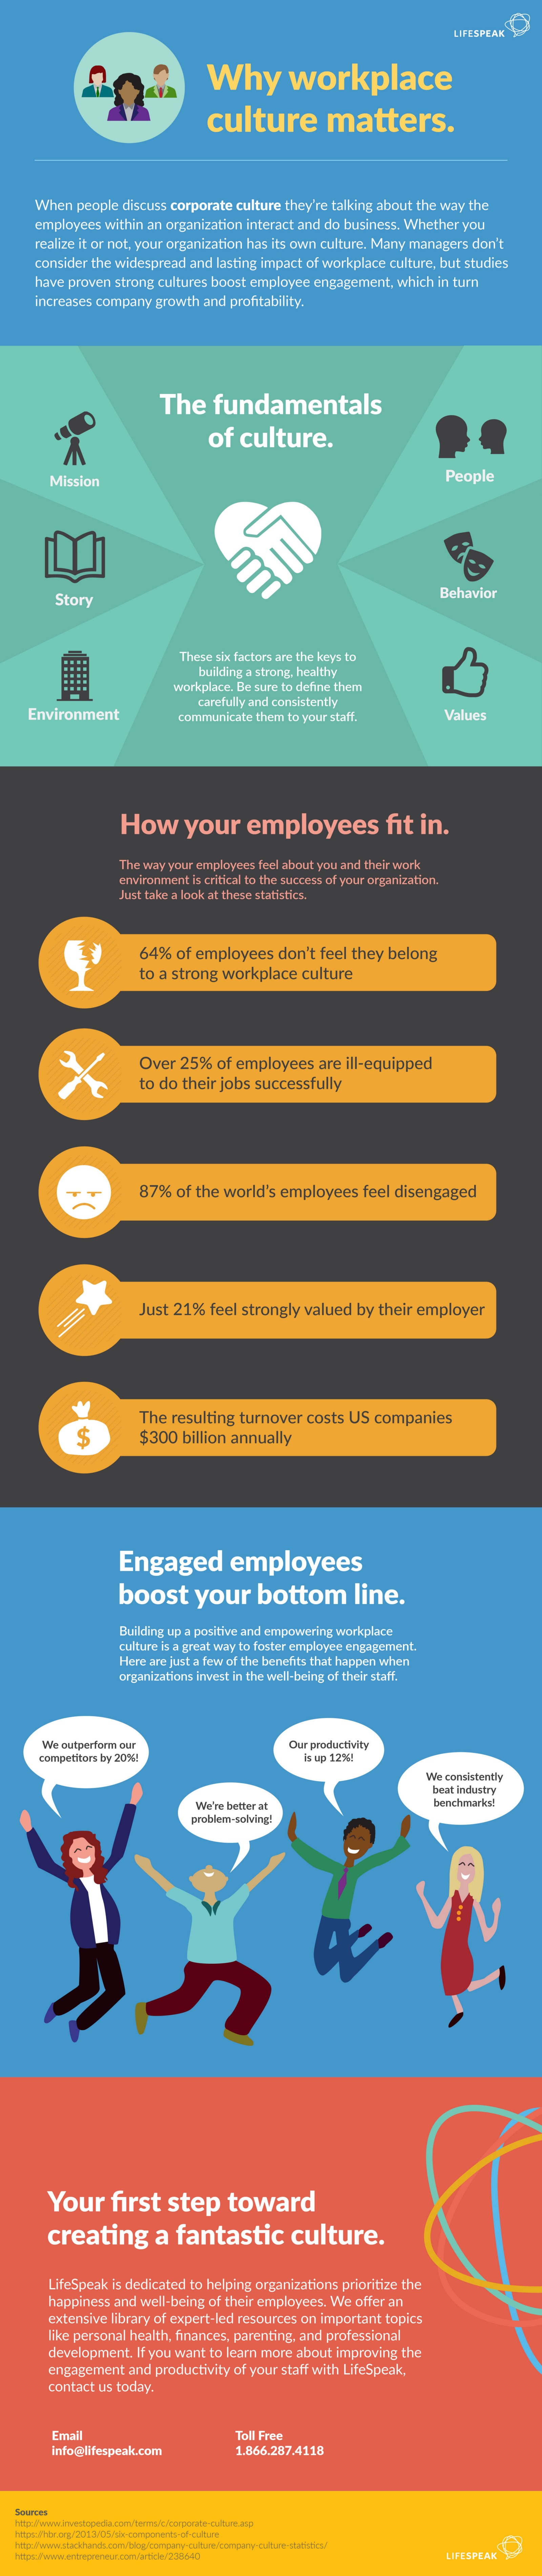 The importance of workplace culture